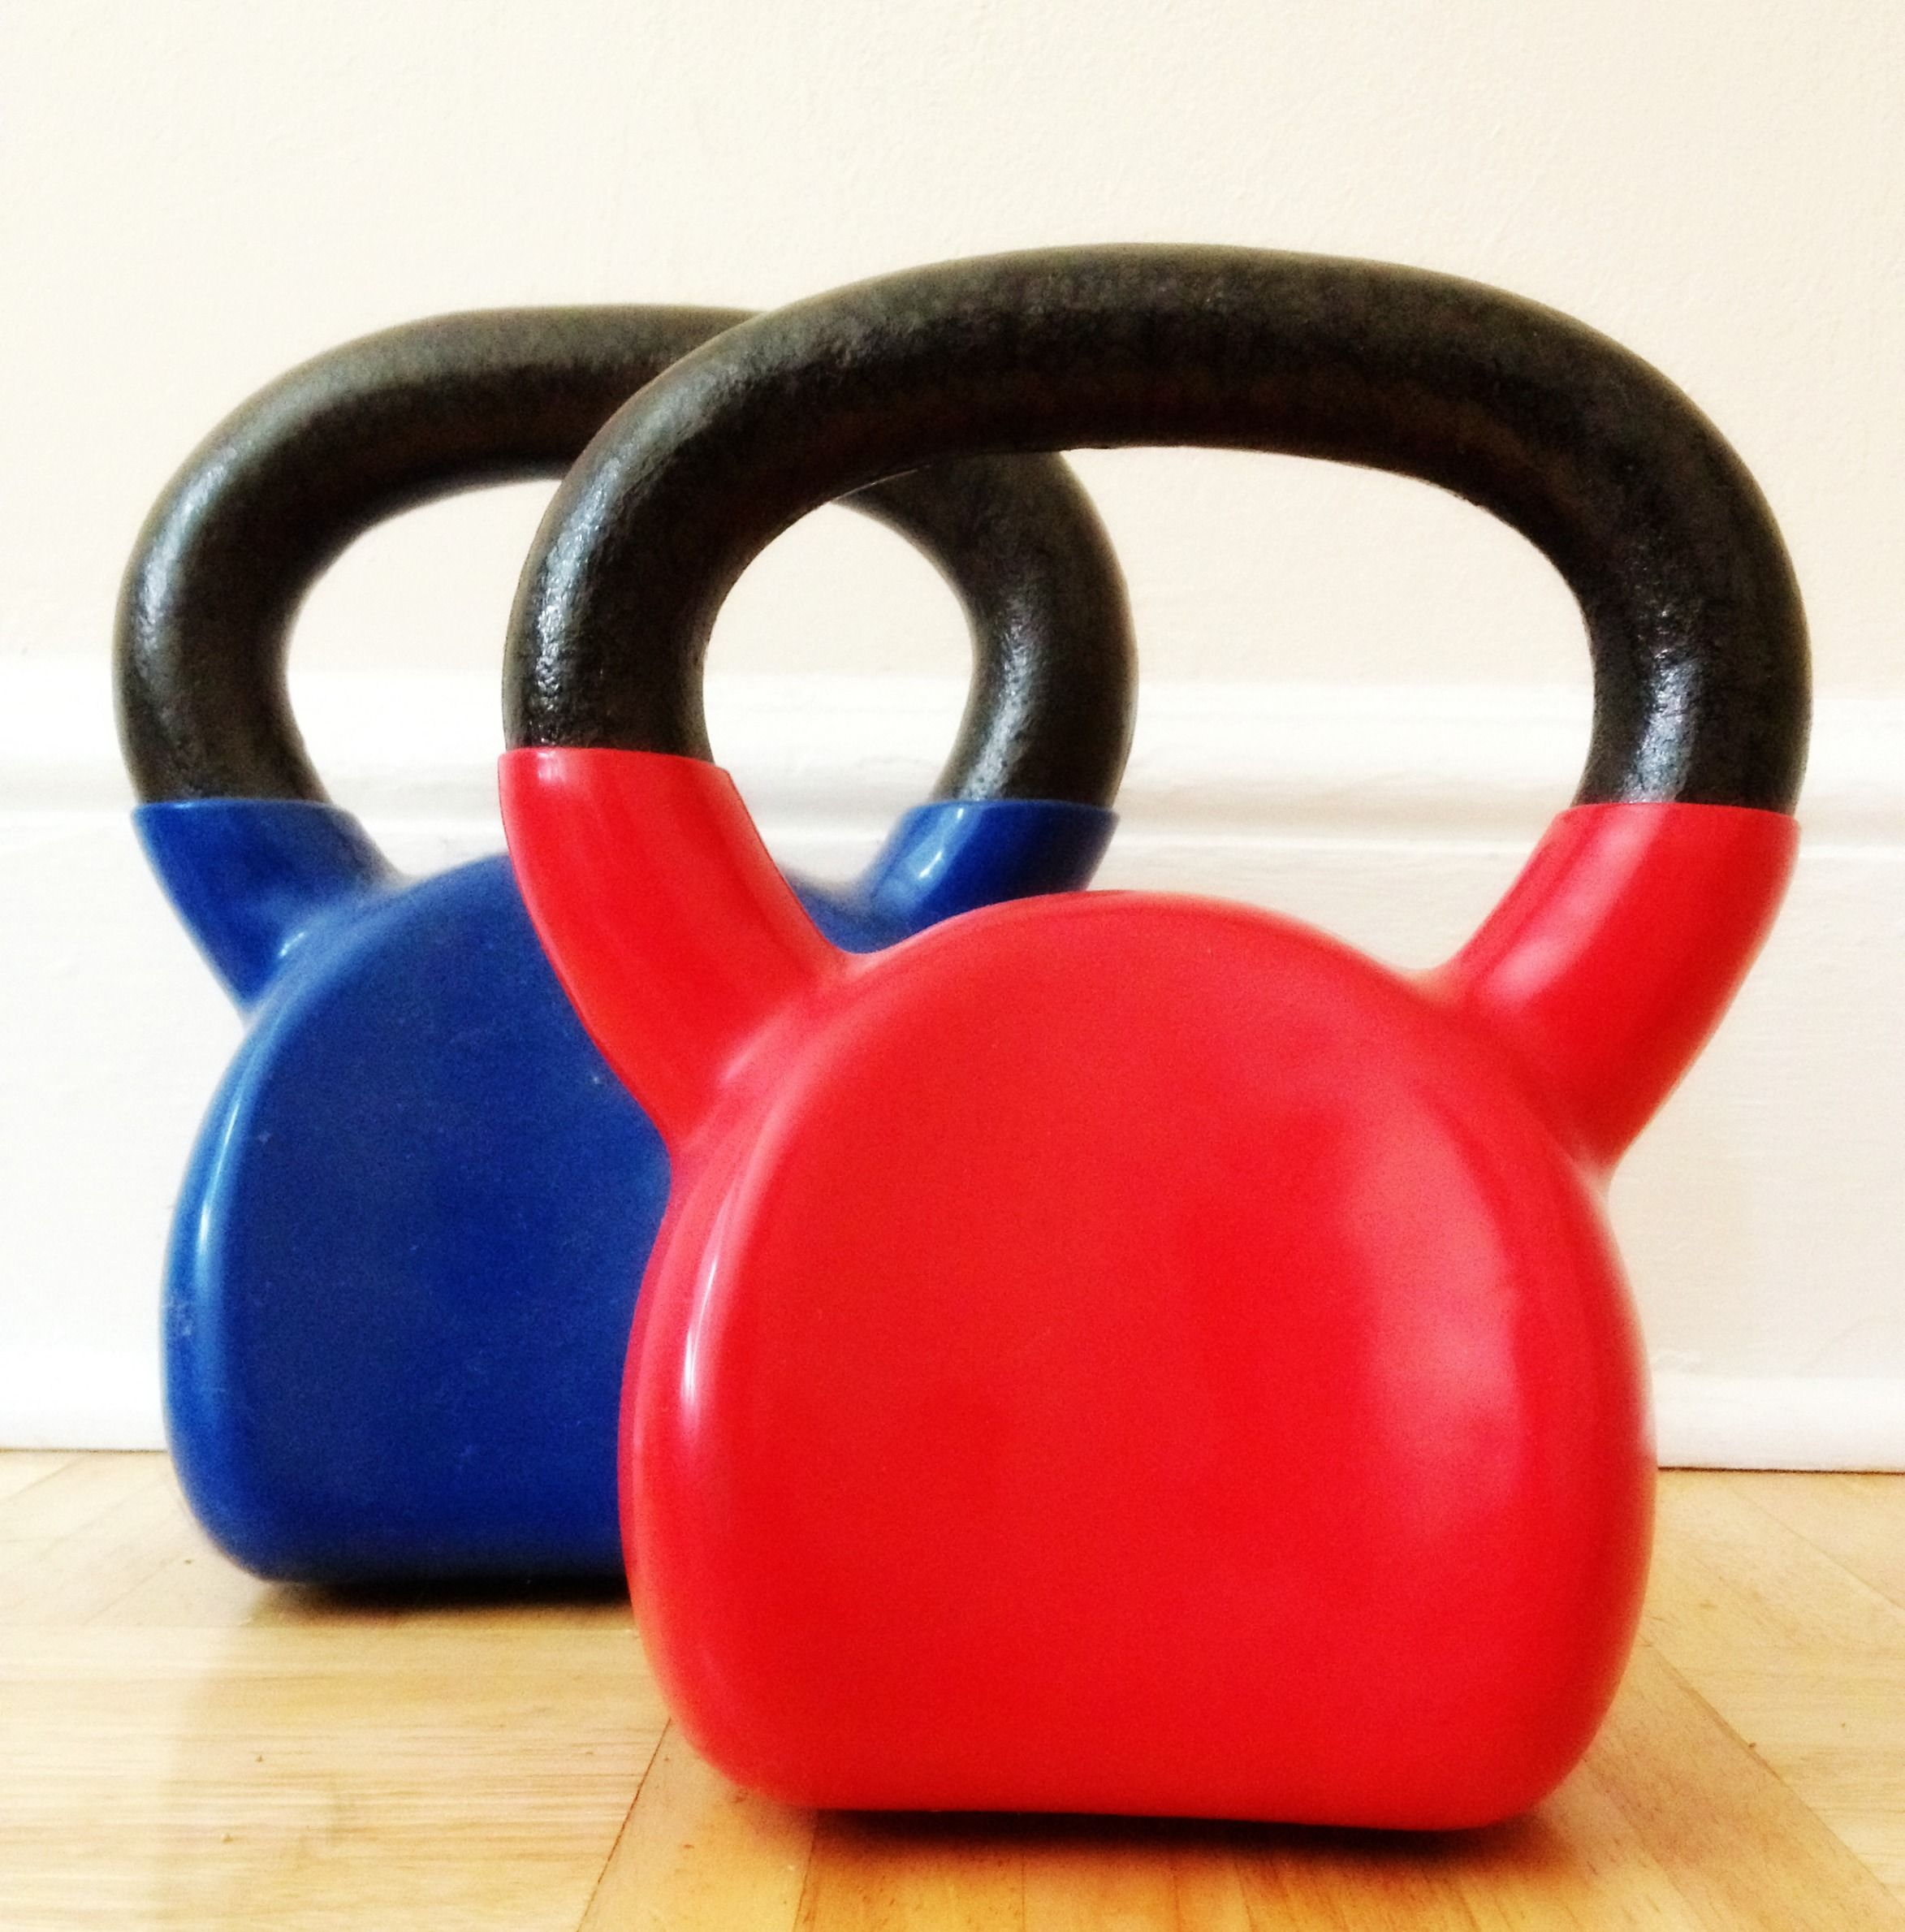 Kettelbell Workout For Runners